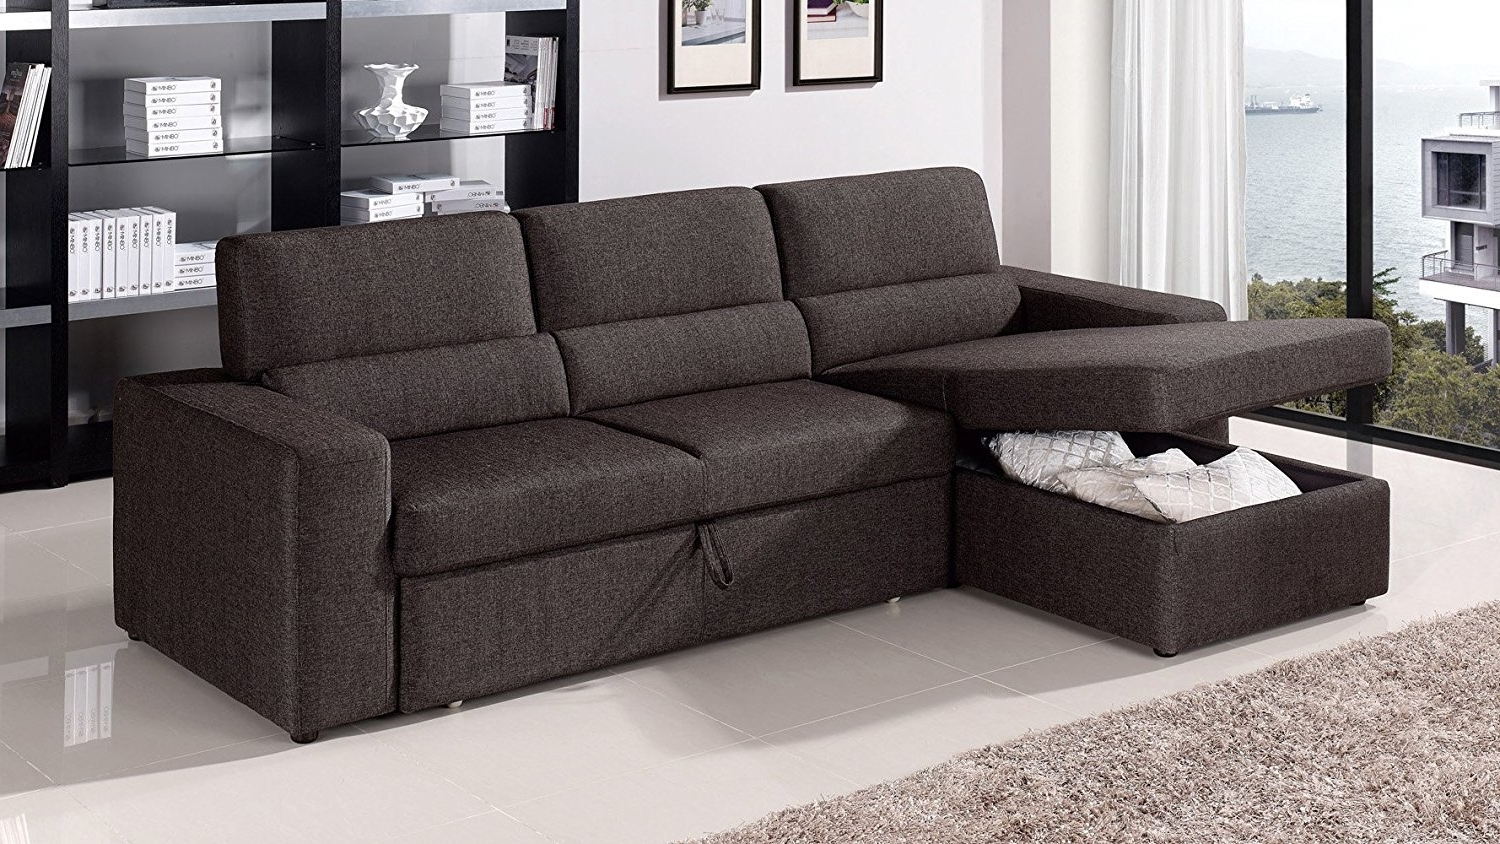 Chaise Sofa Sectionals For Famous Amazon: Black/brown Clubber Sleeper Sectional Sofa – Left (View 12 of 15)